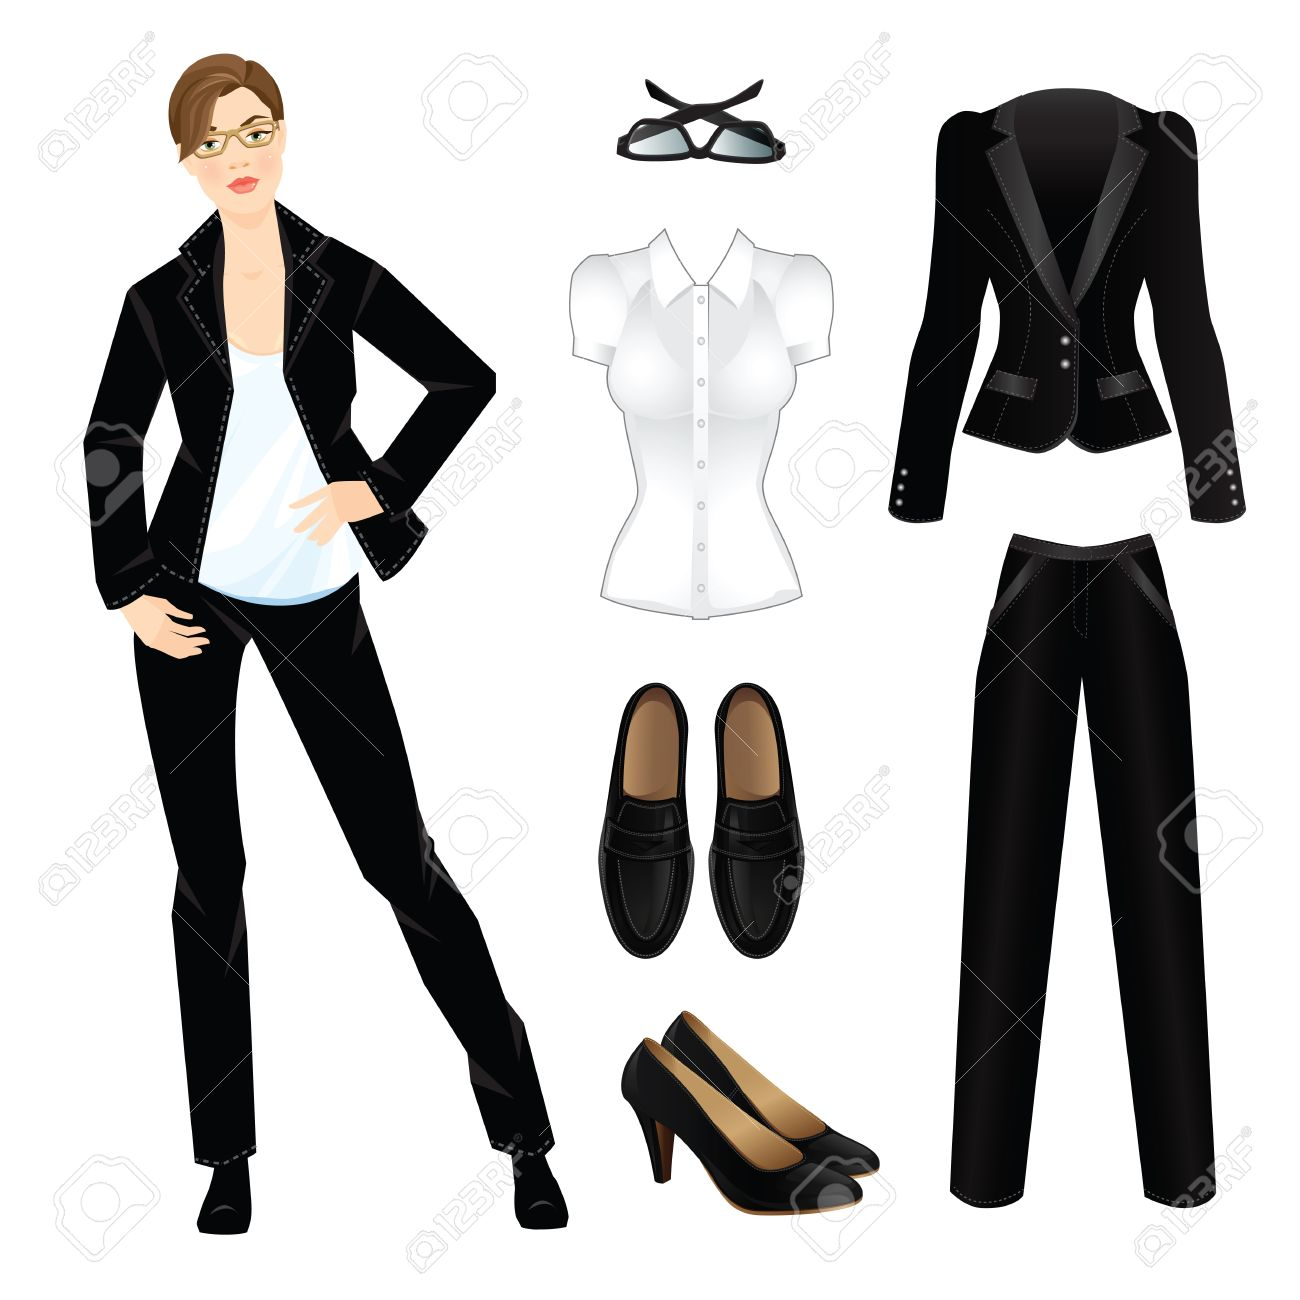 1e9e367d85 illustration of corporate dress code. Office uniform. Clothes for women.  Business woman or